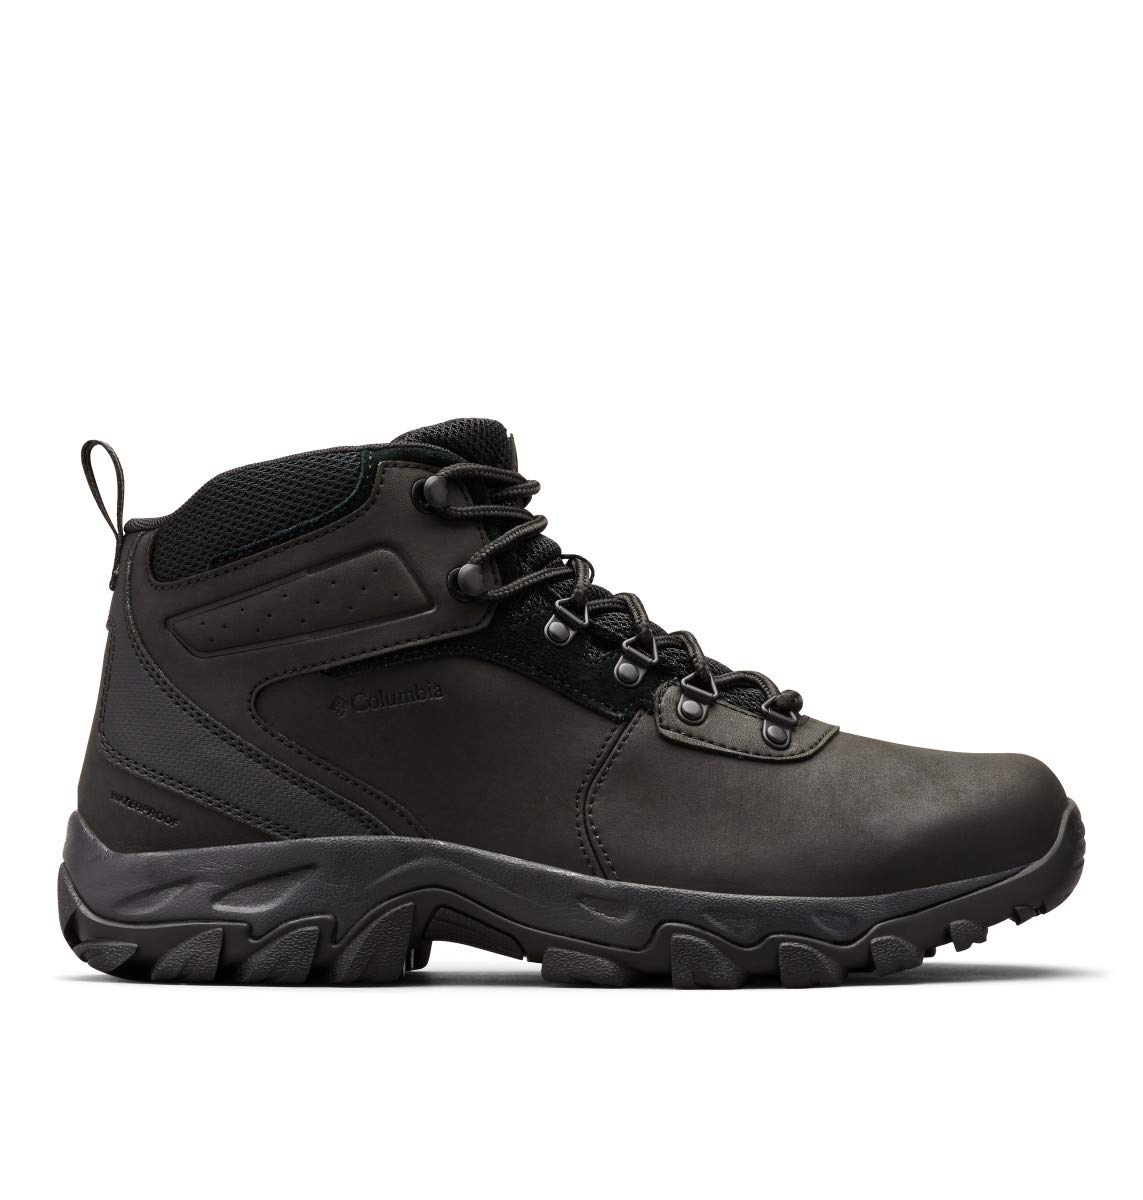 Columbia Men's Newton Ridge Plus II Waterproof Hiking Boot-Wide, Black, 9 Regular US